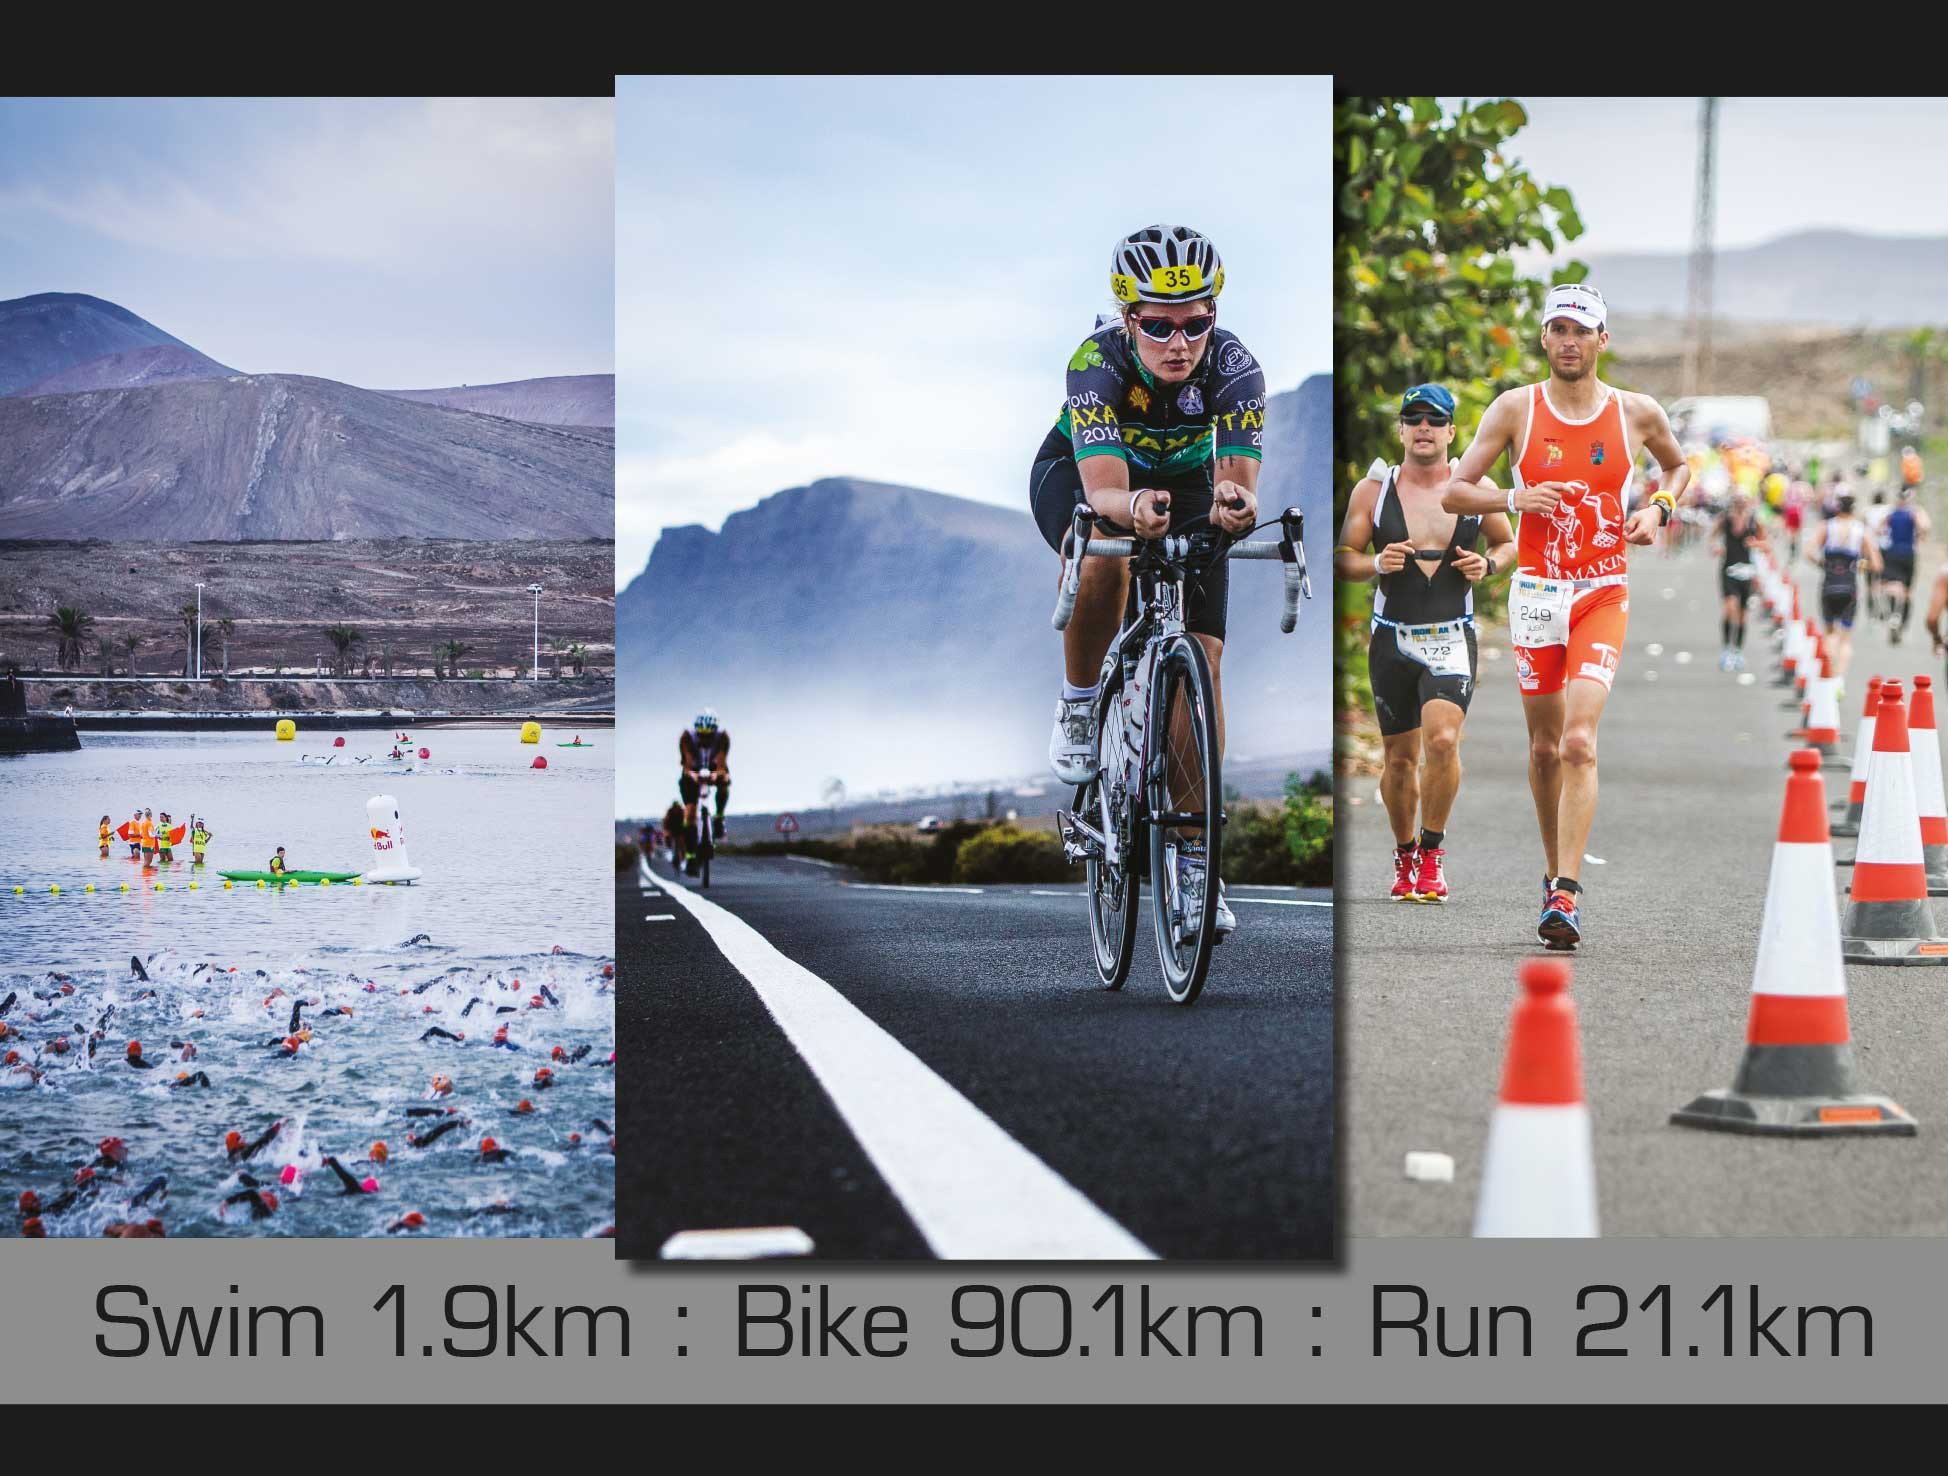 Online registration is now open for the 2015 IRONMAN 70.3 Lanzarote